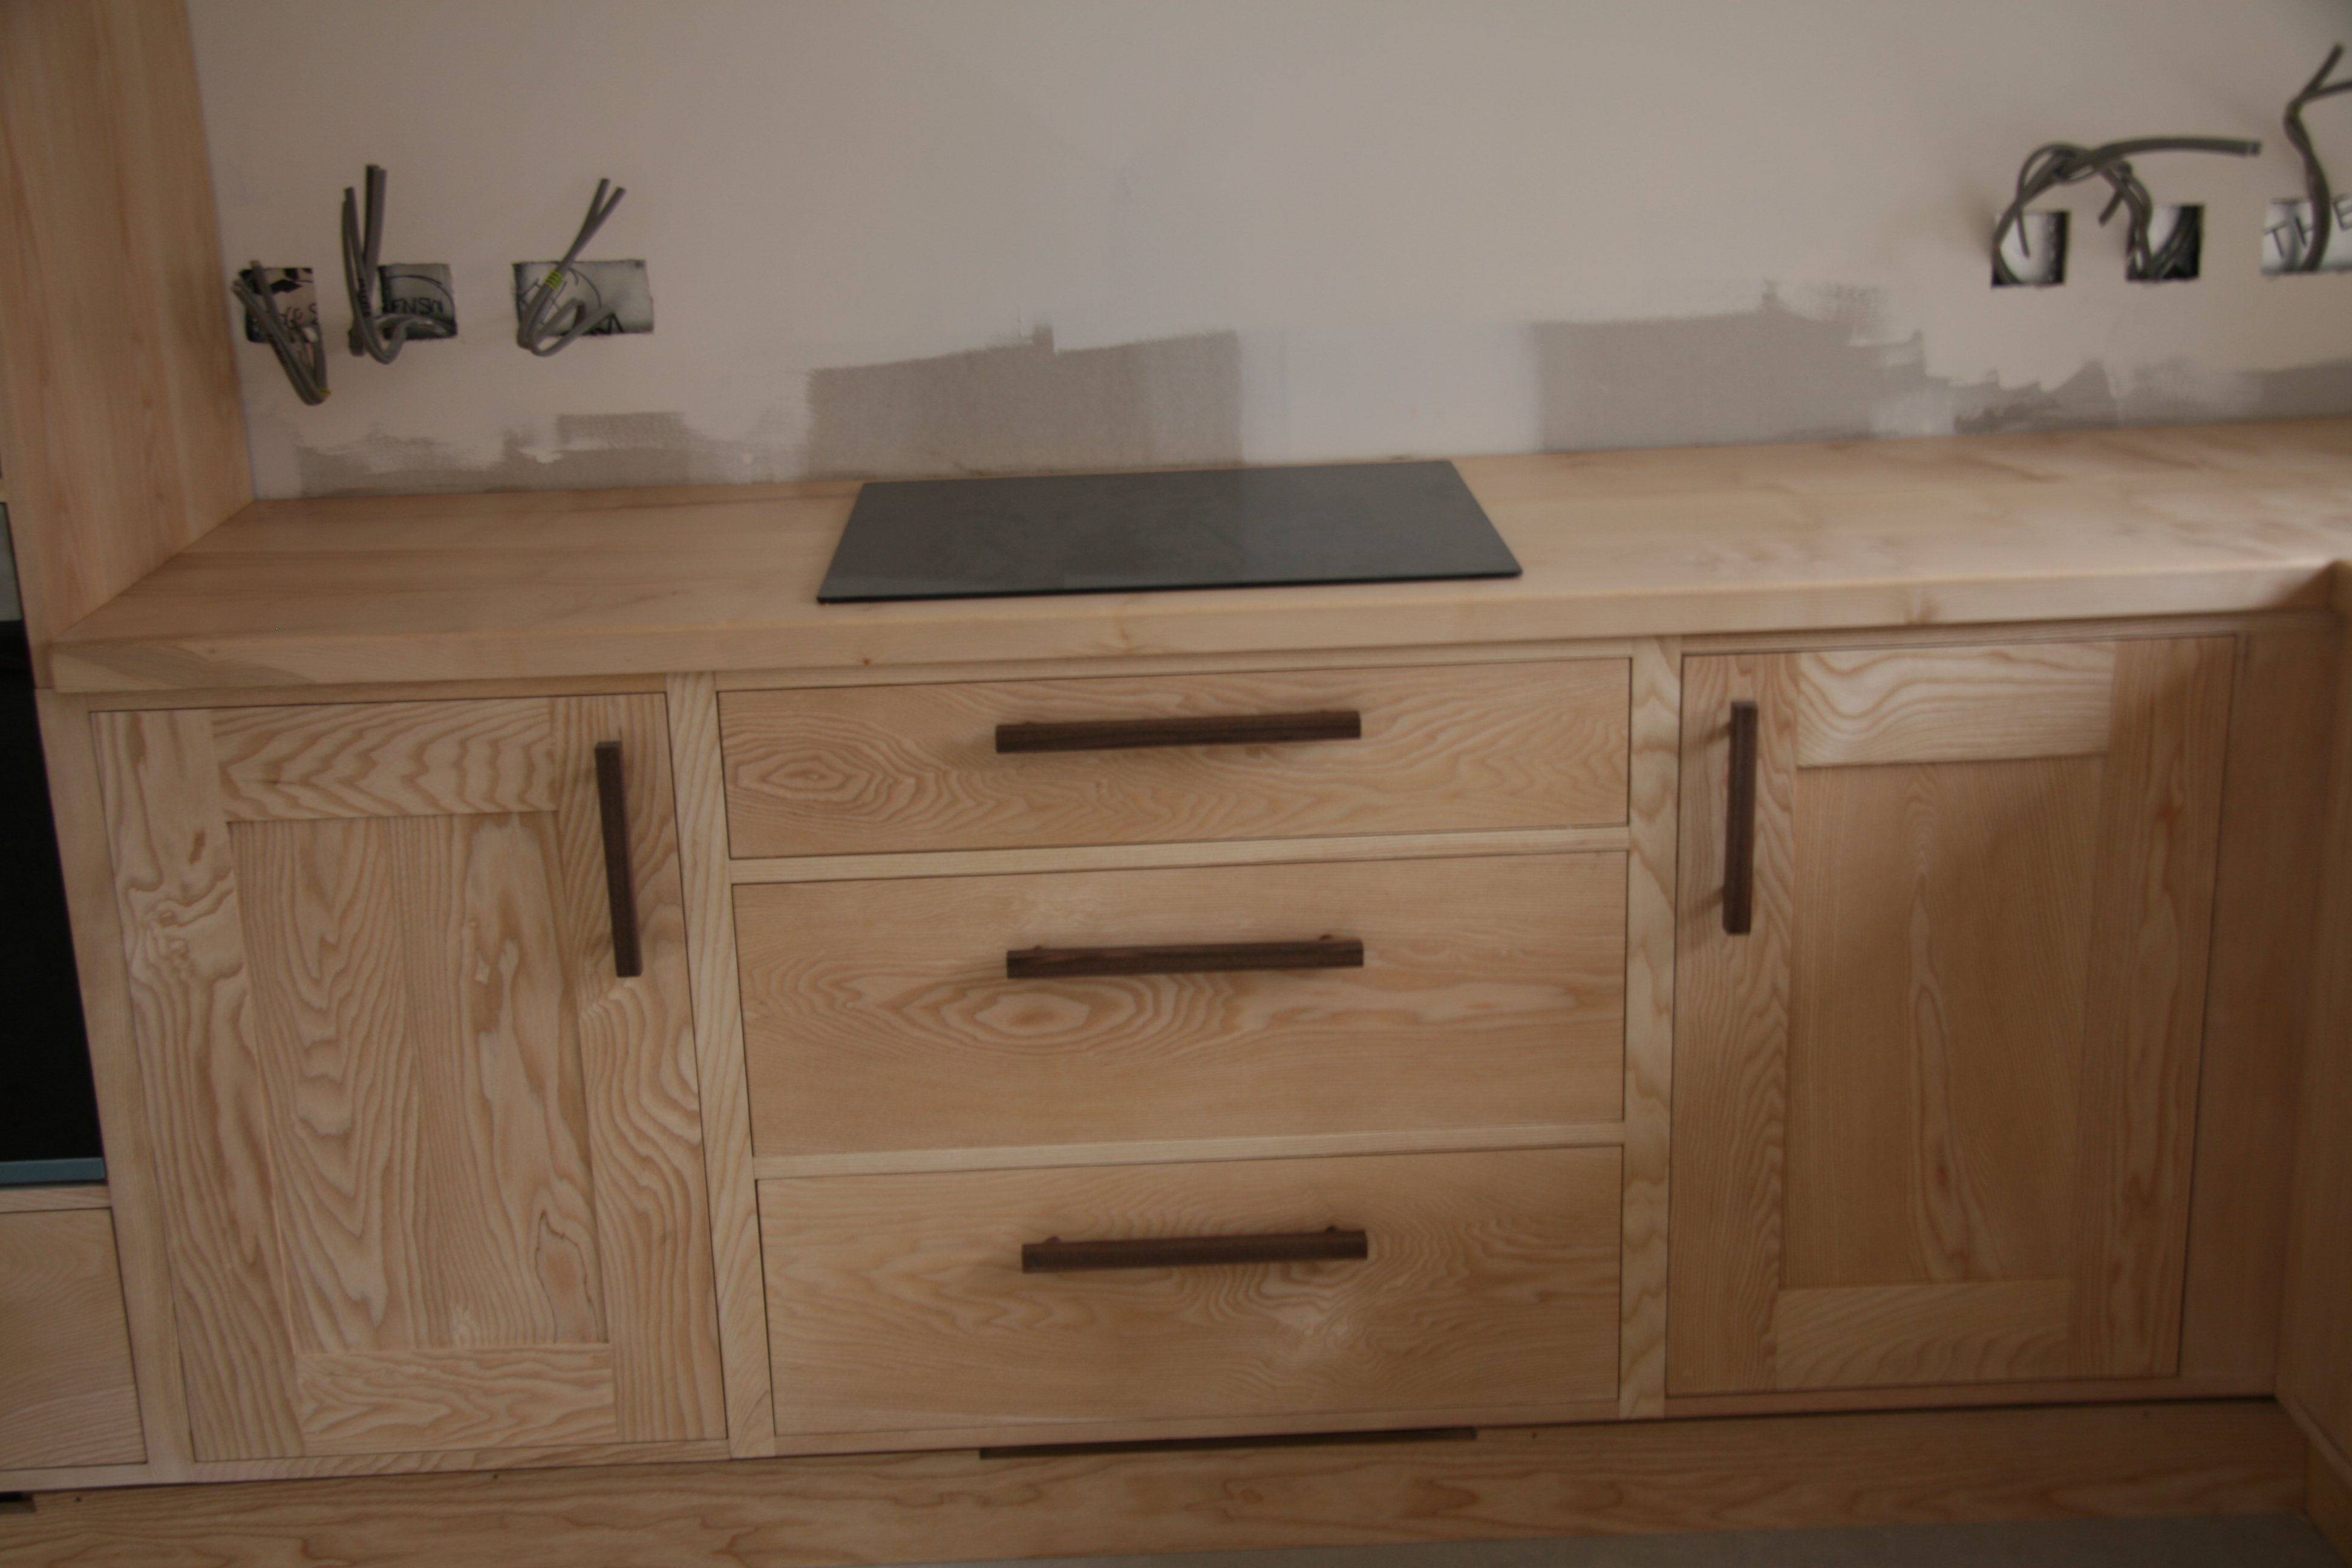 Hob unit with drawers